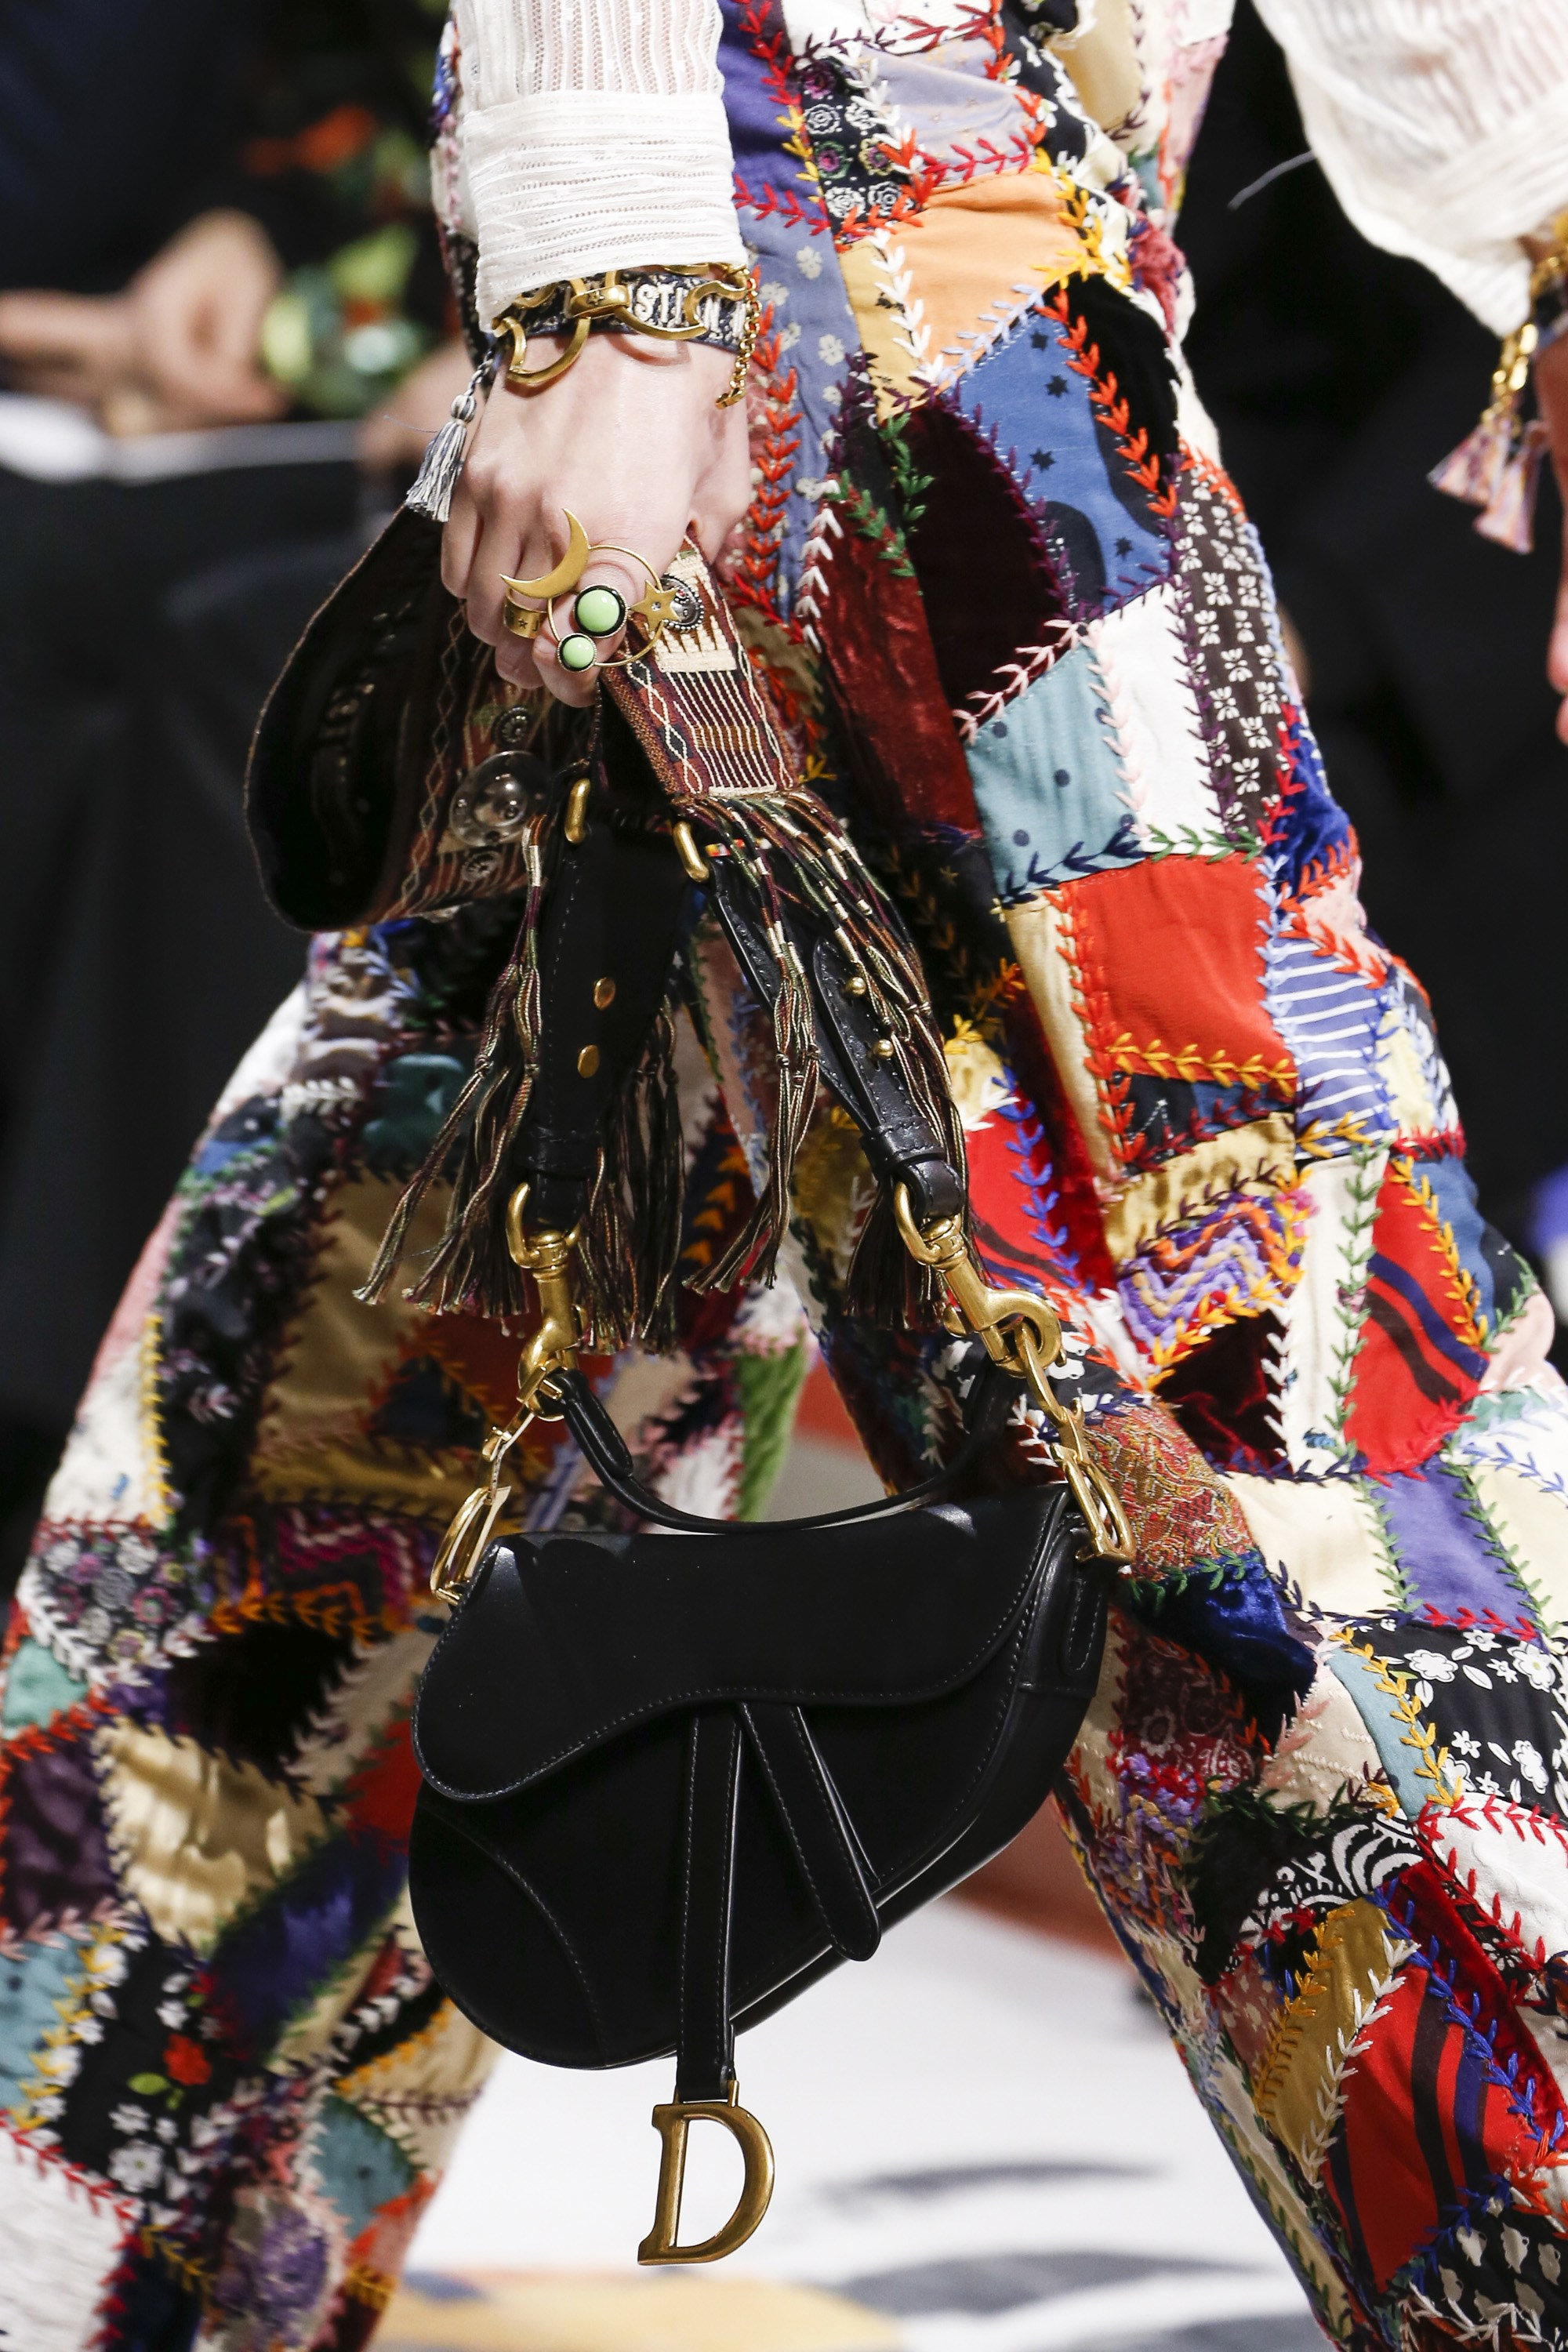 Dior Fall Winter 2018 Runway Bag Collection featuring Saddle Bags ... b9ad6b2491c37